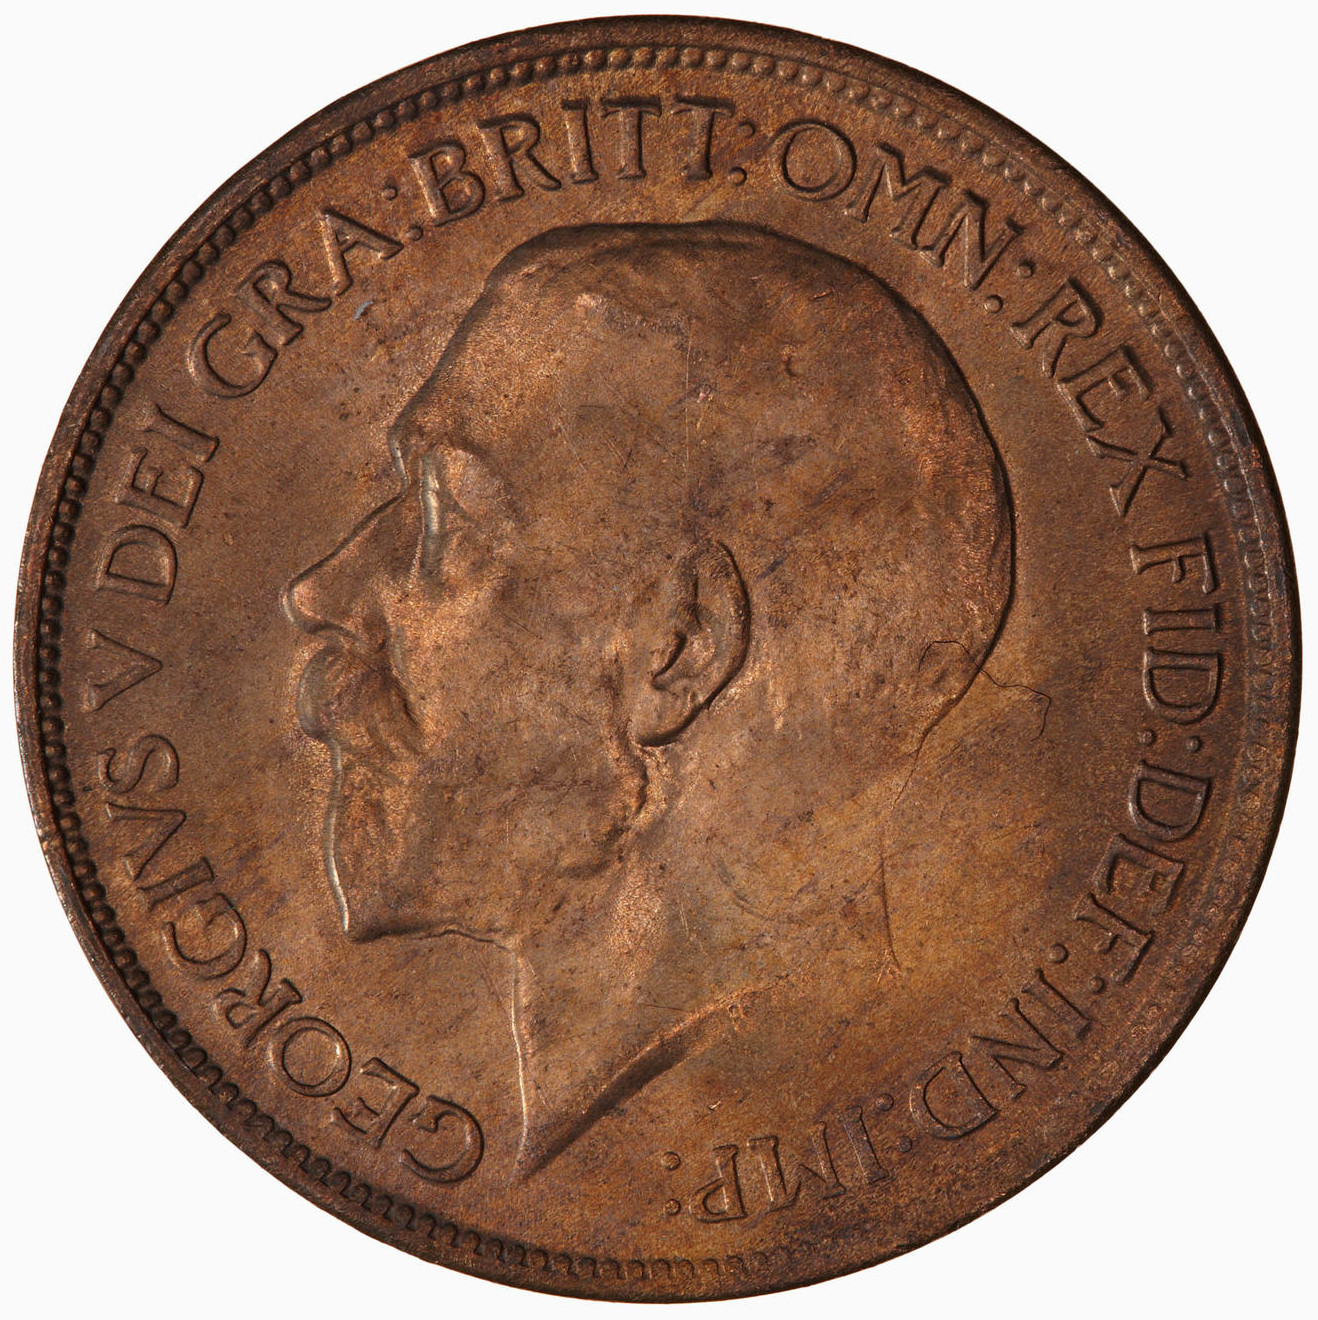 Halfpenny 1917: Photo Coin - Halfpenny, George V, Great Britain, 1917